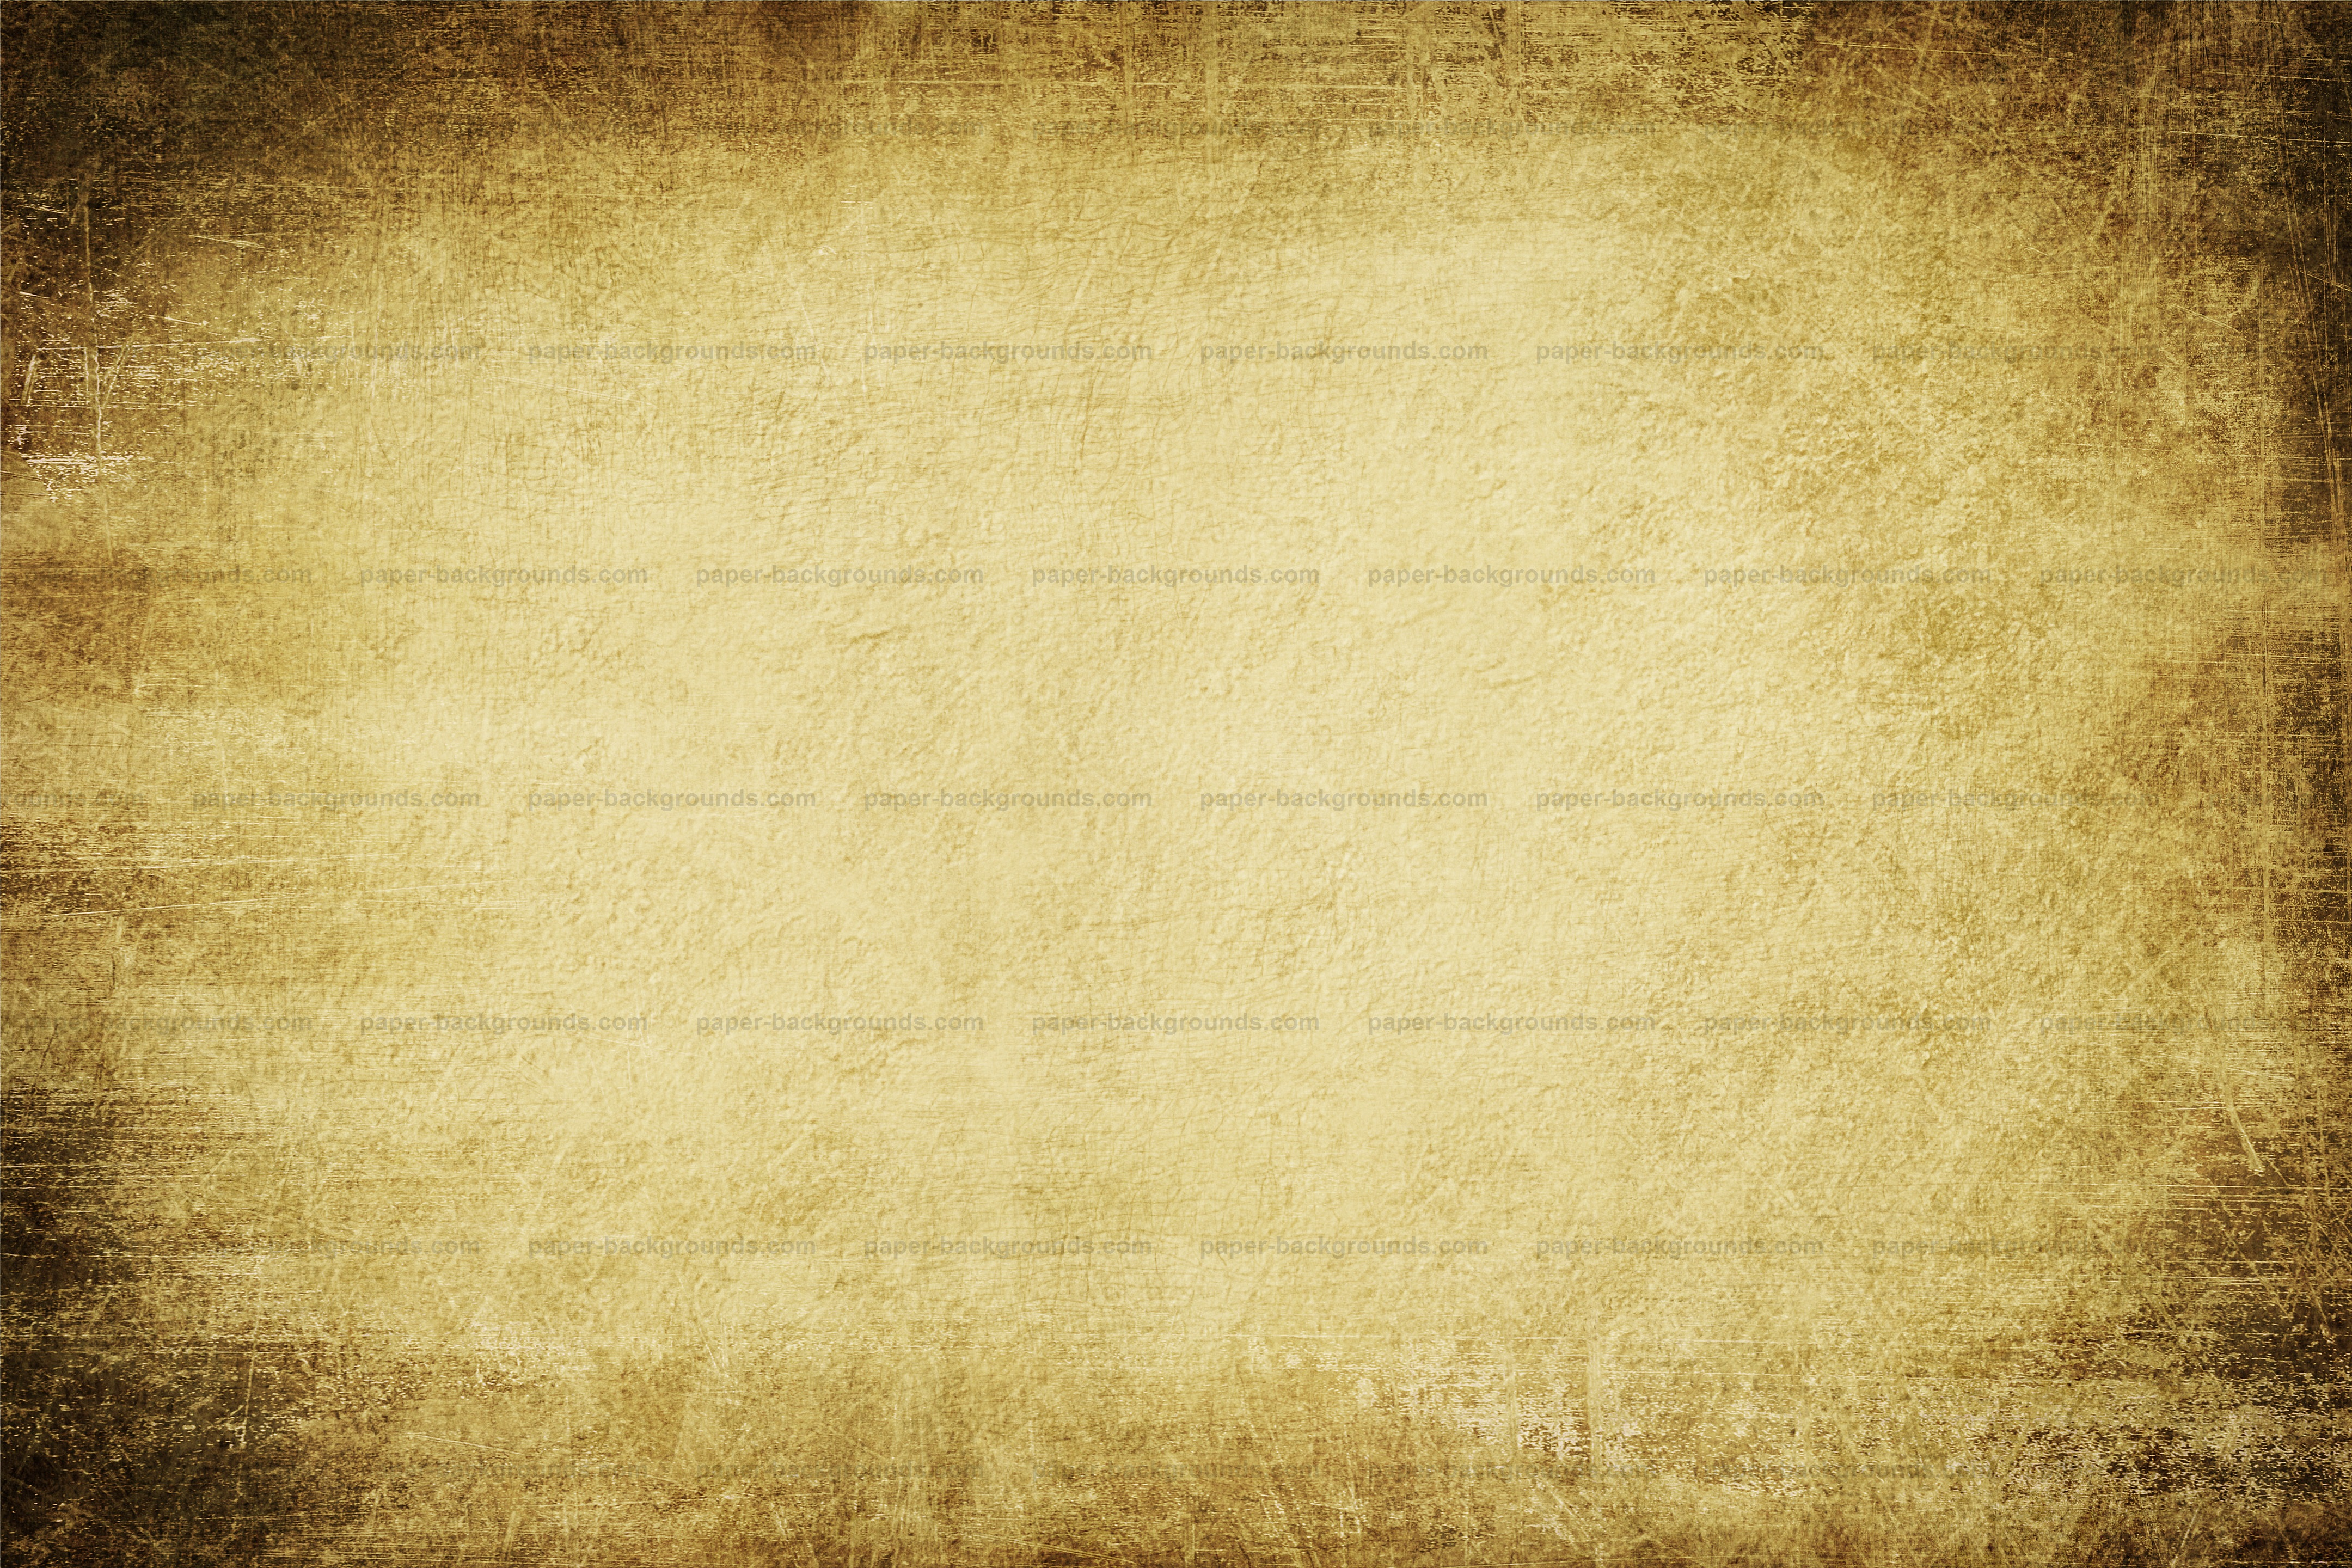 Paper backgrounds yellow grunge wall texture background high yellow grunge wall texture background high resolution voltagebd Choice Image